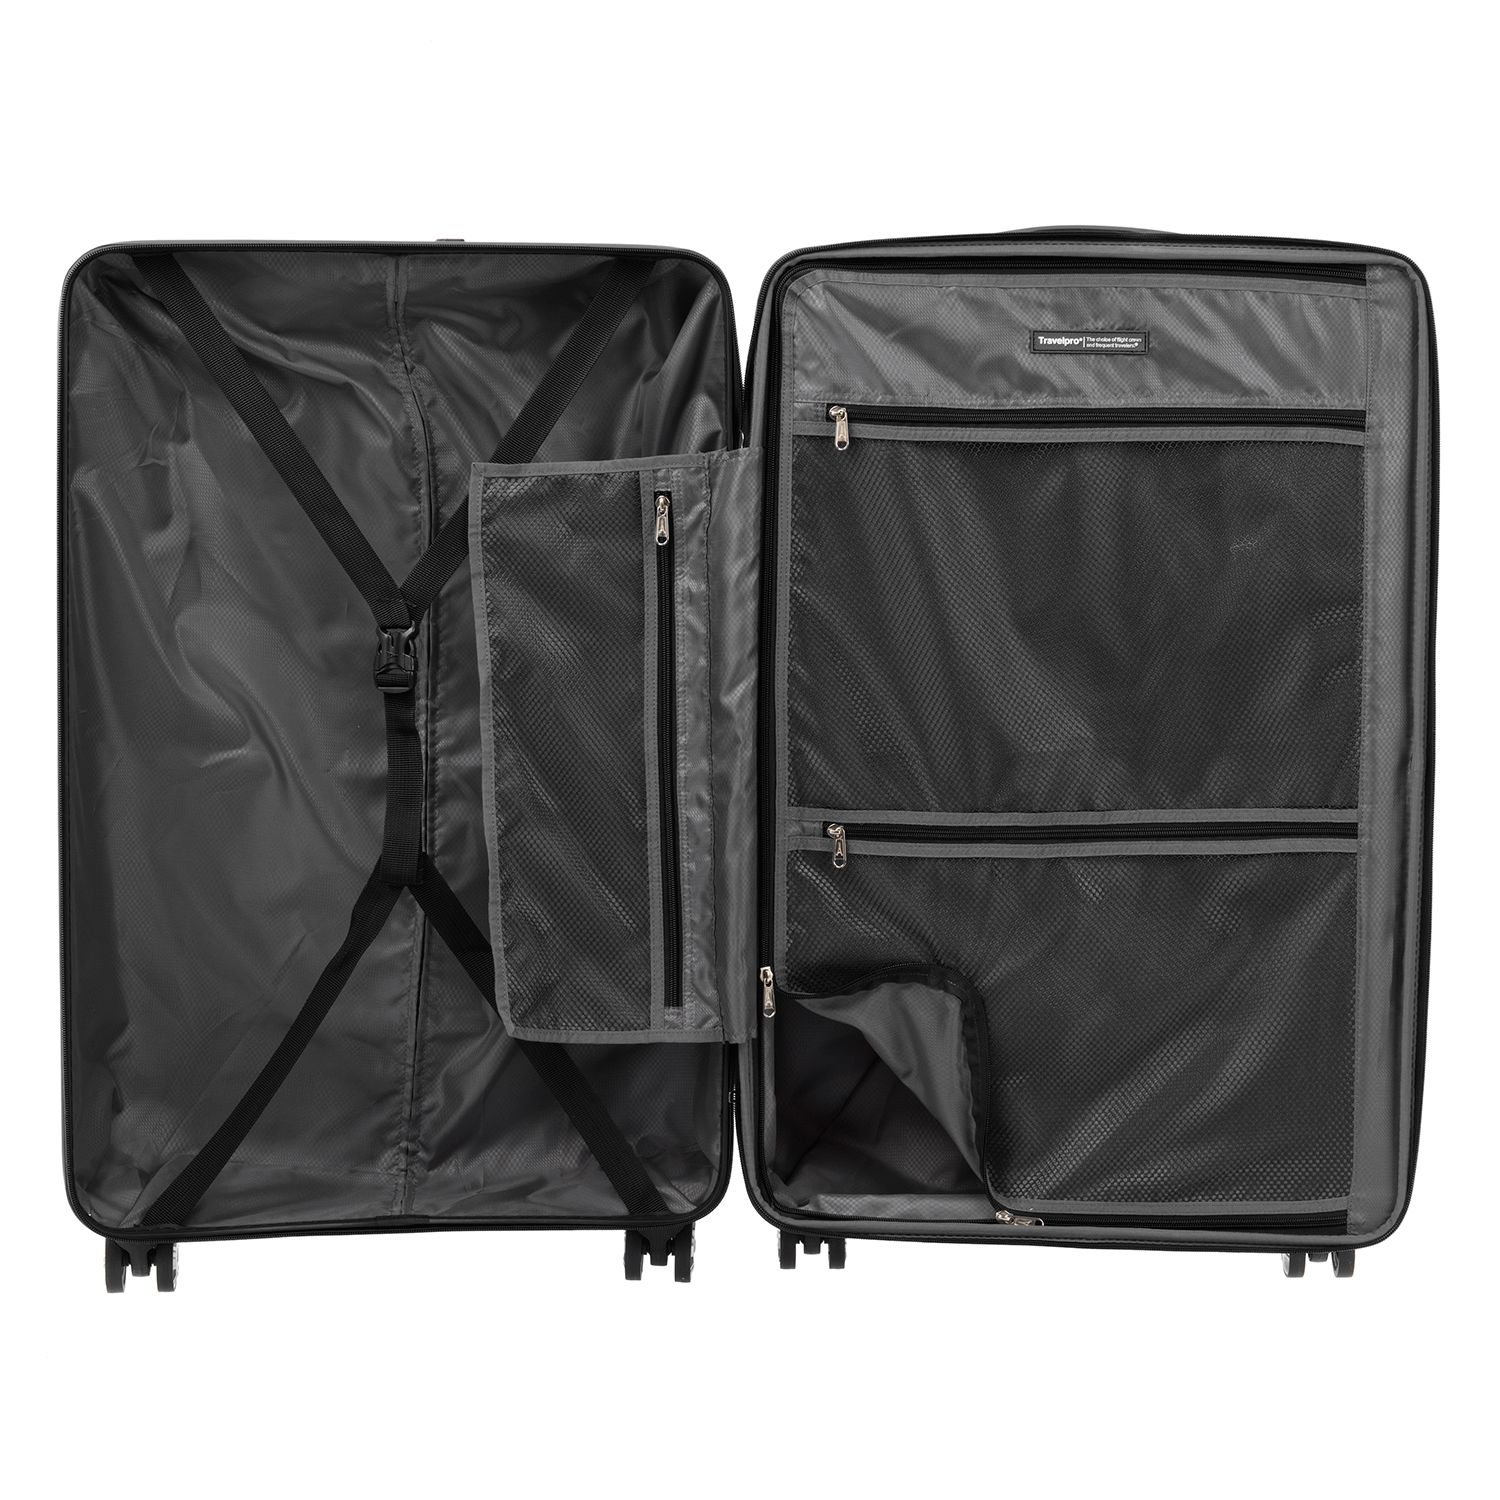 577f3884f Luggage & Suitcases | Kohl's